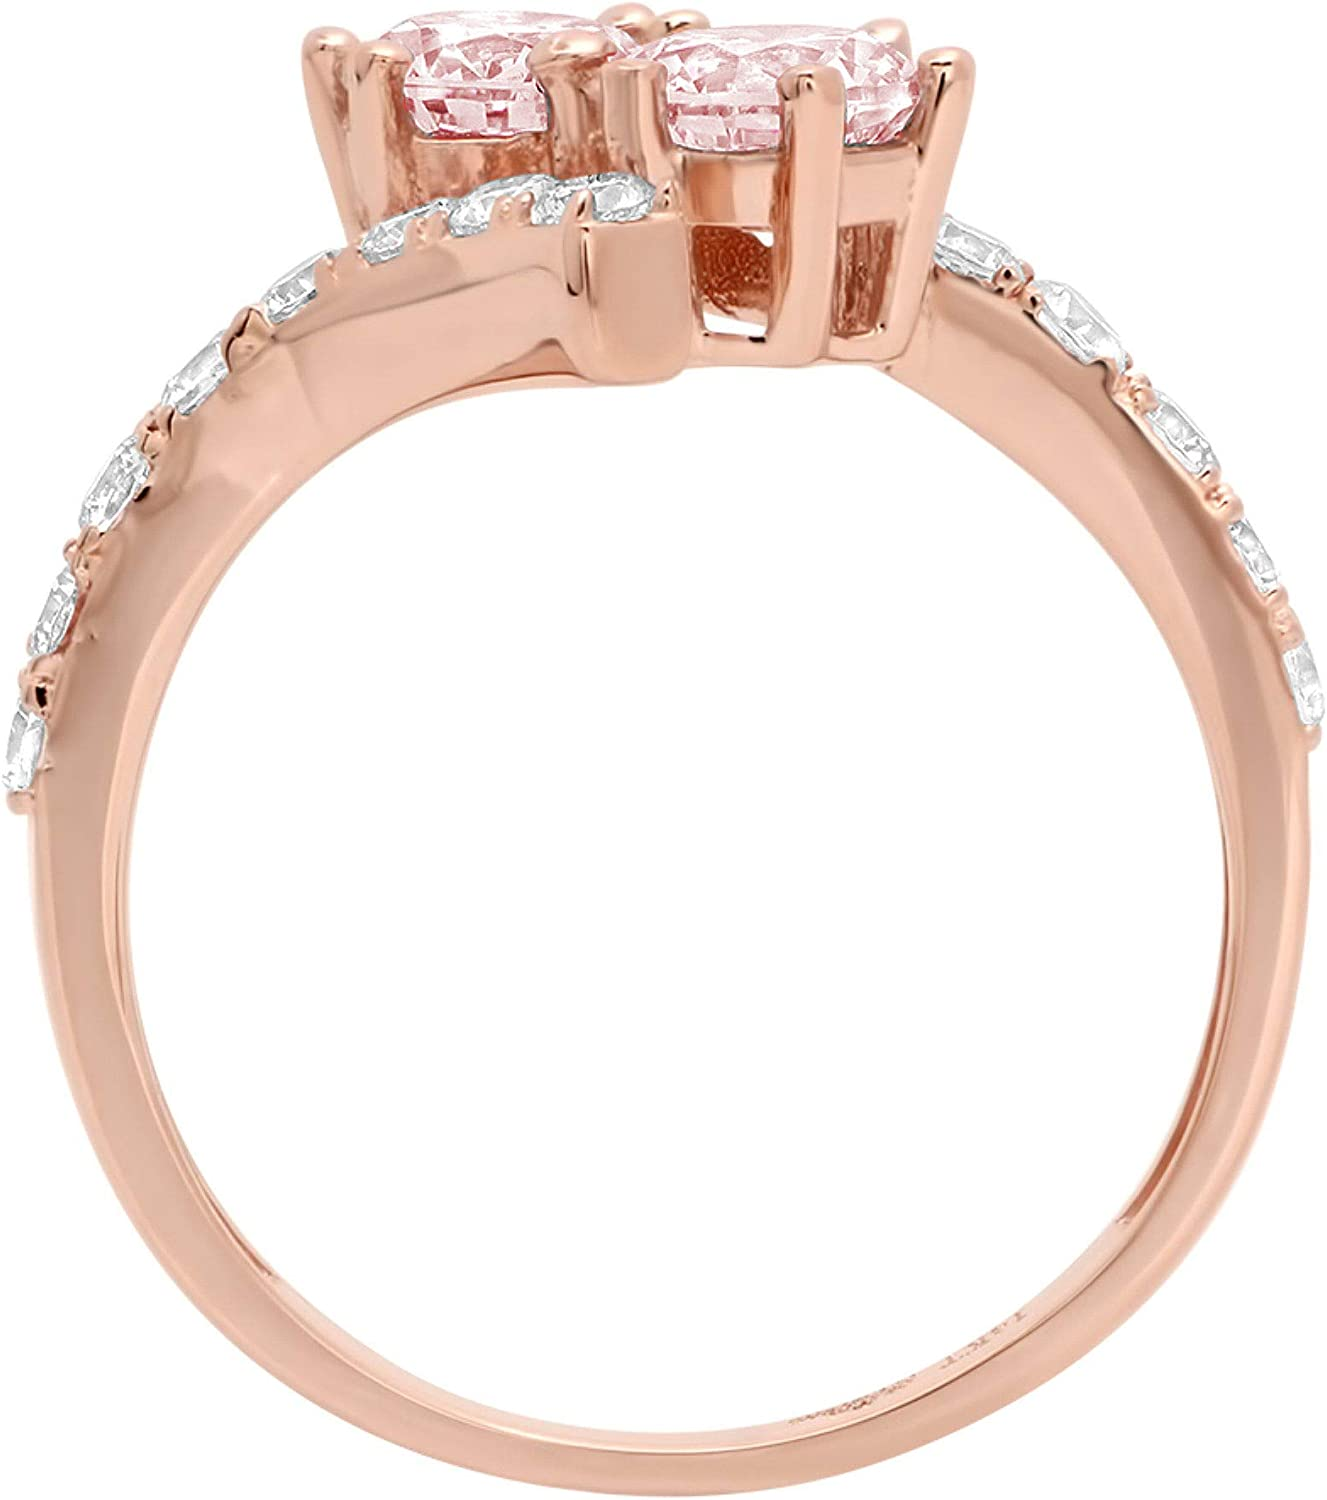 1.92ct Round Cut 2 stone love Solitaire Pink Ideal VVS1 Simulated Diamond CZ Engagement Promise Statement Anniversary Bridal Wedding with accent Ring Solid 14k Rose Gold